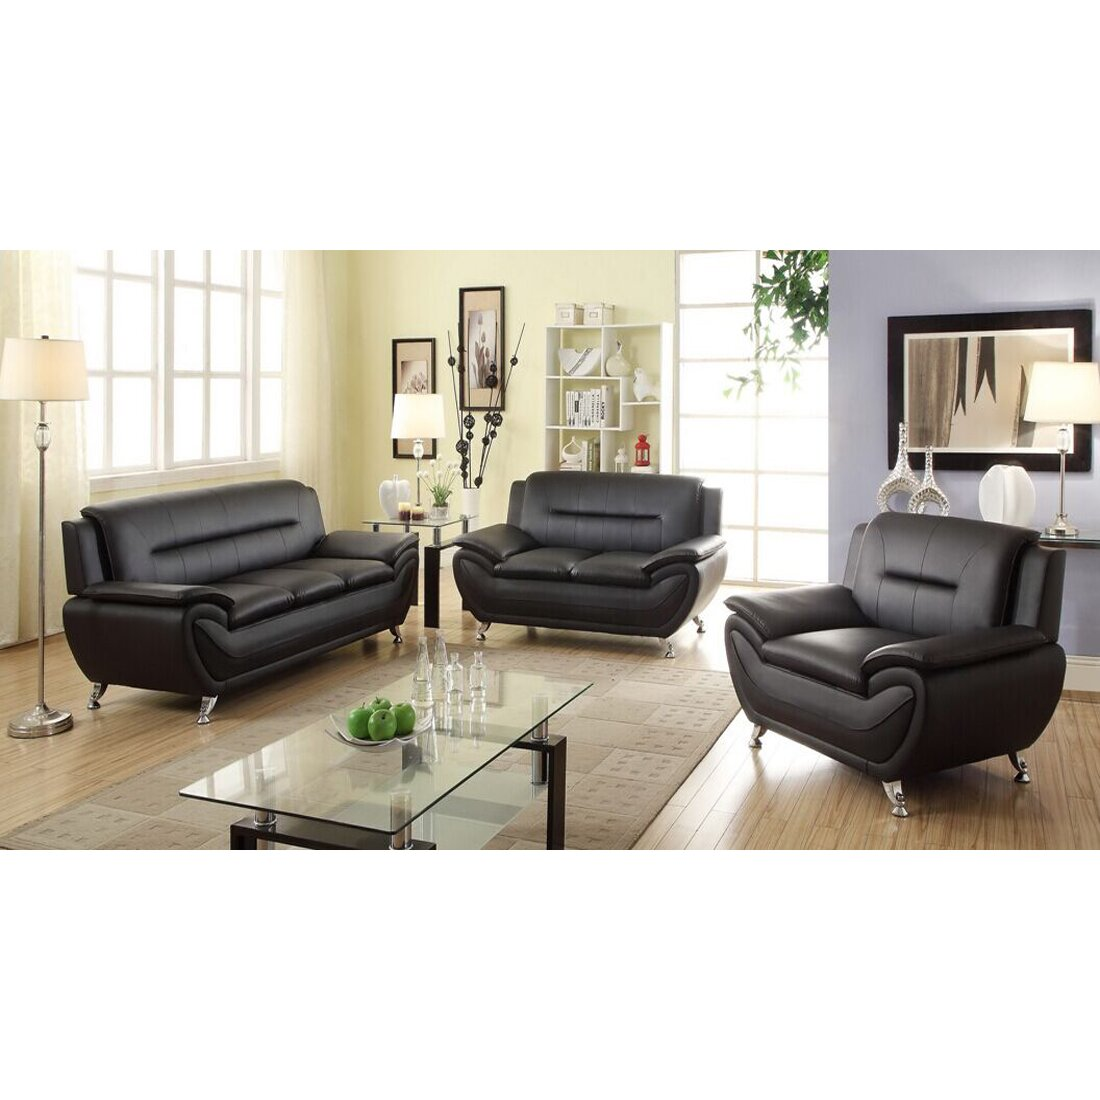 Furniture accent furniture arm accent chairs living in style sku